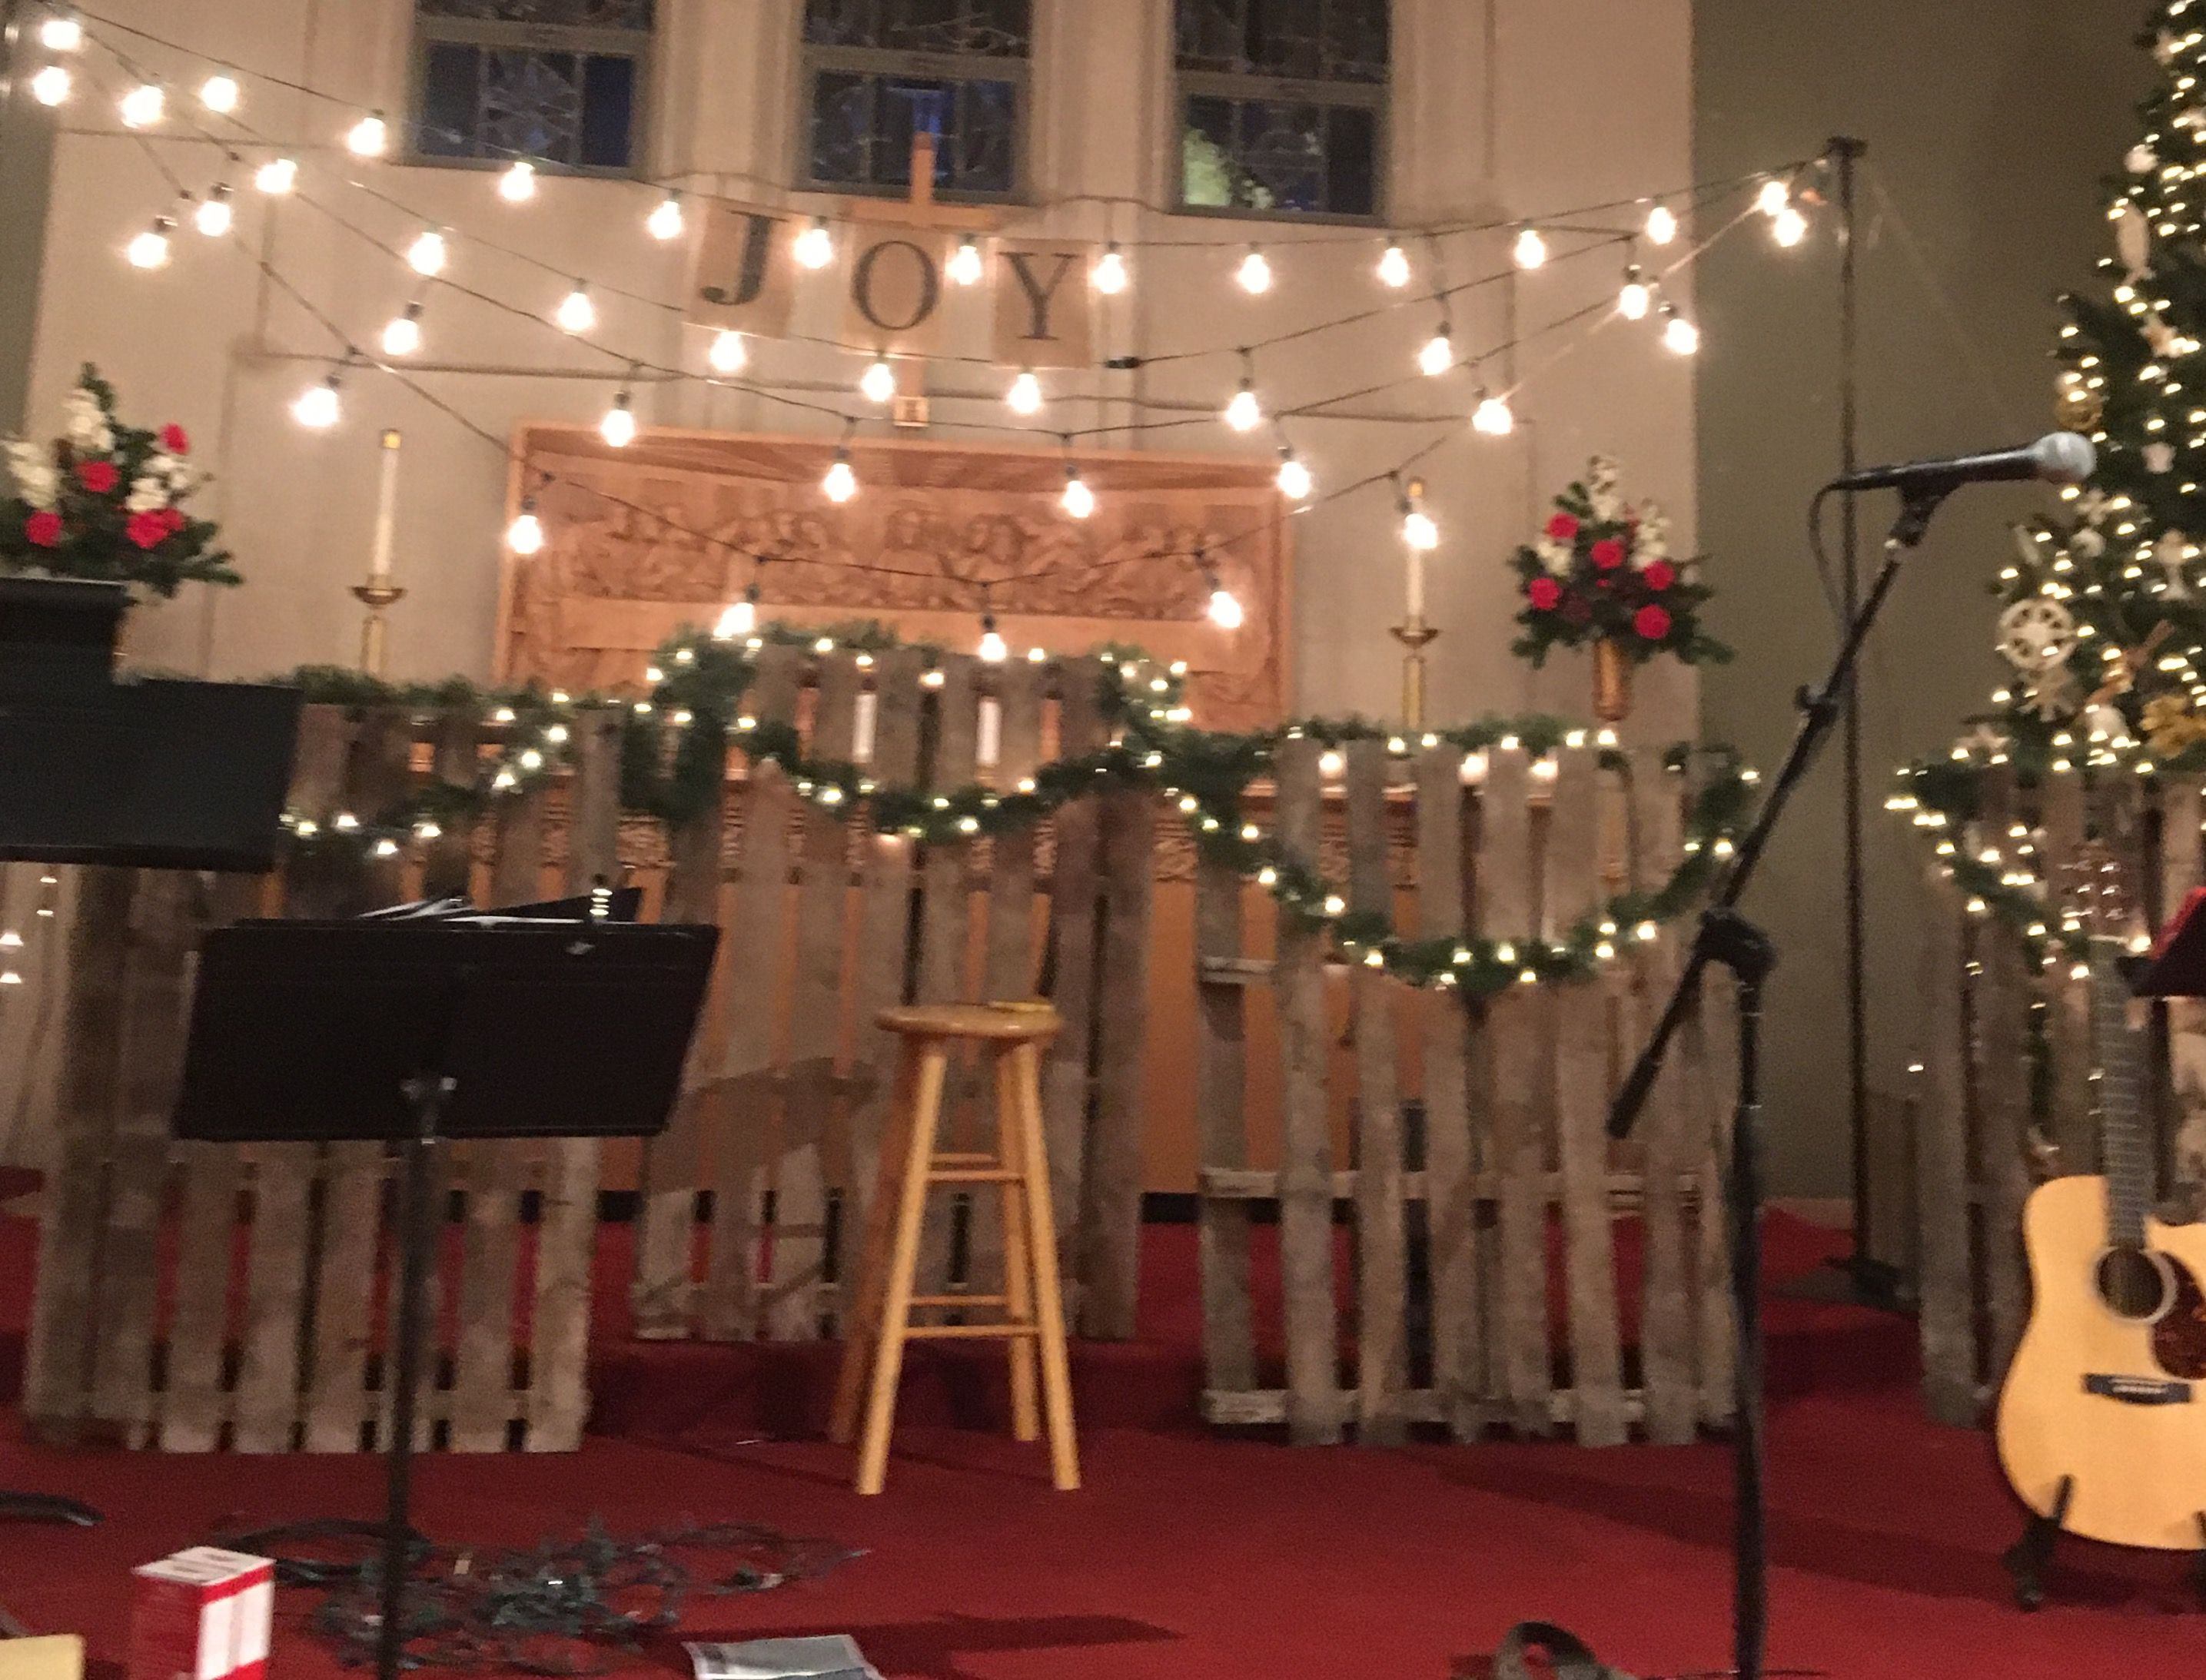 Rustic Christmas Stage Design With